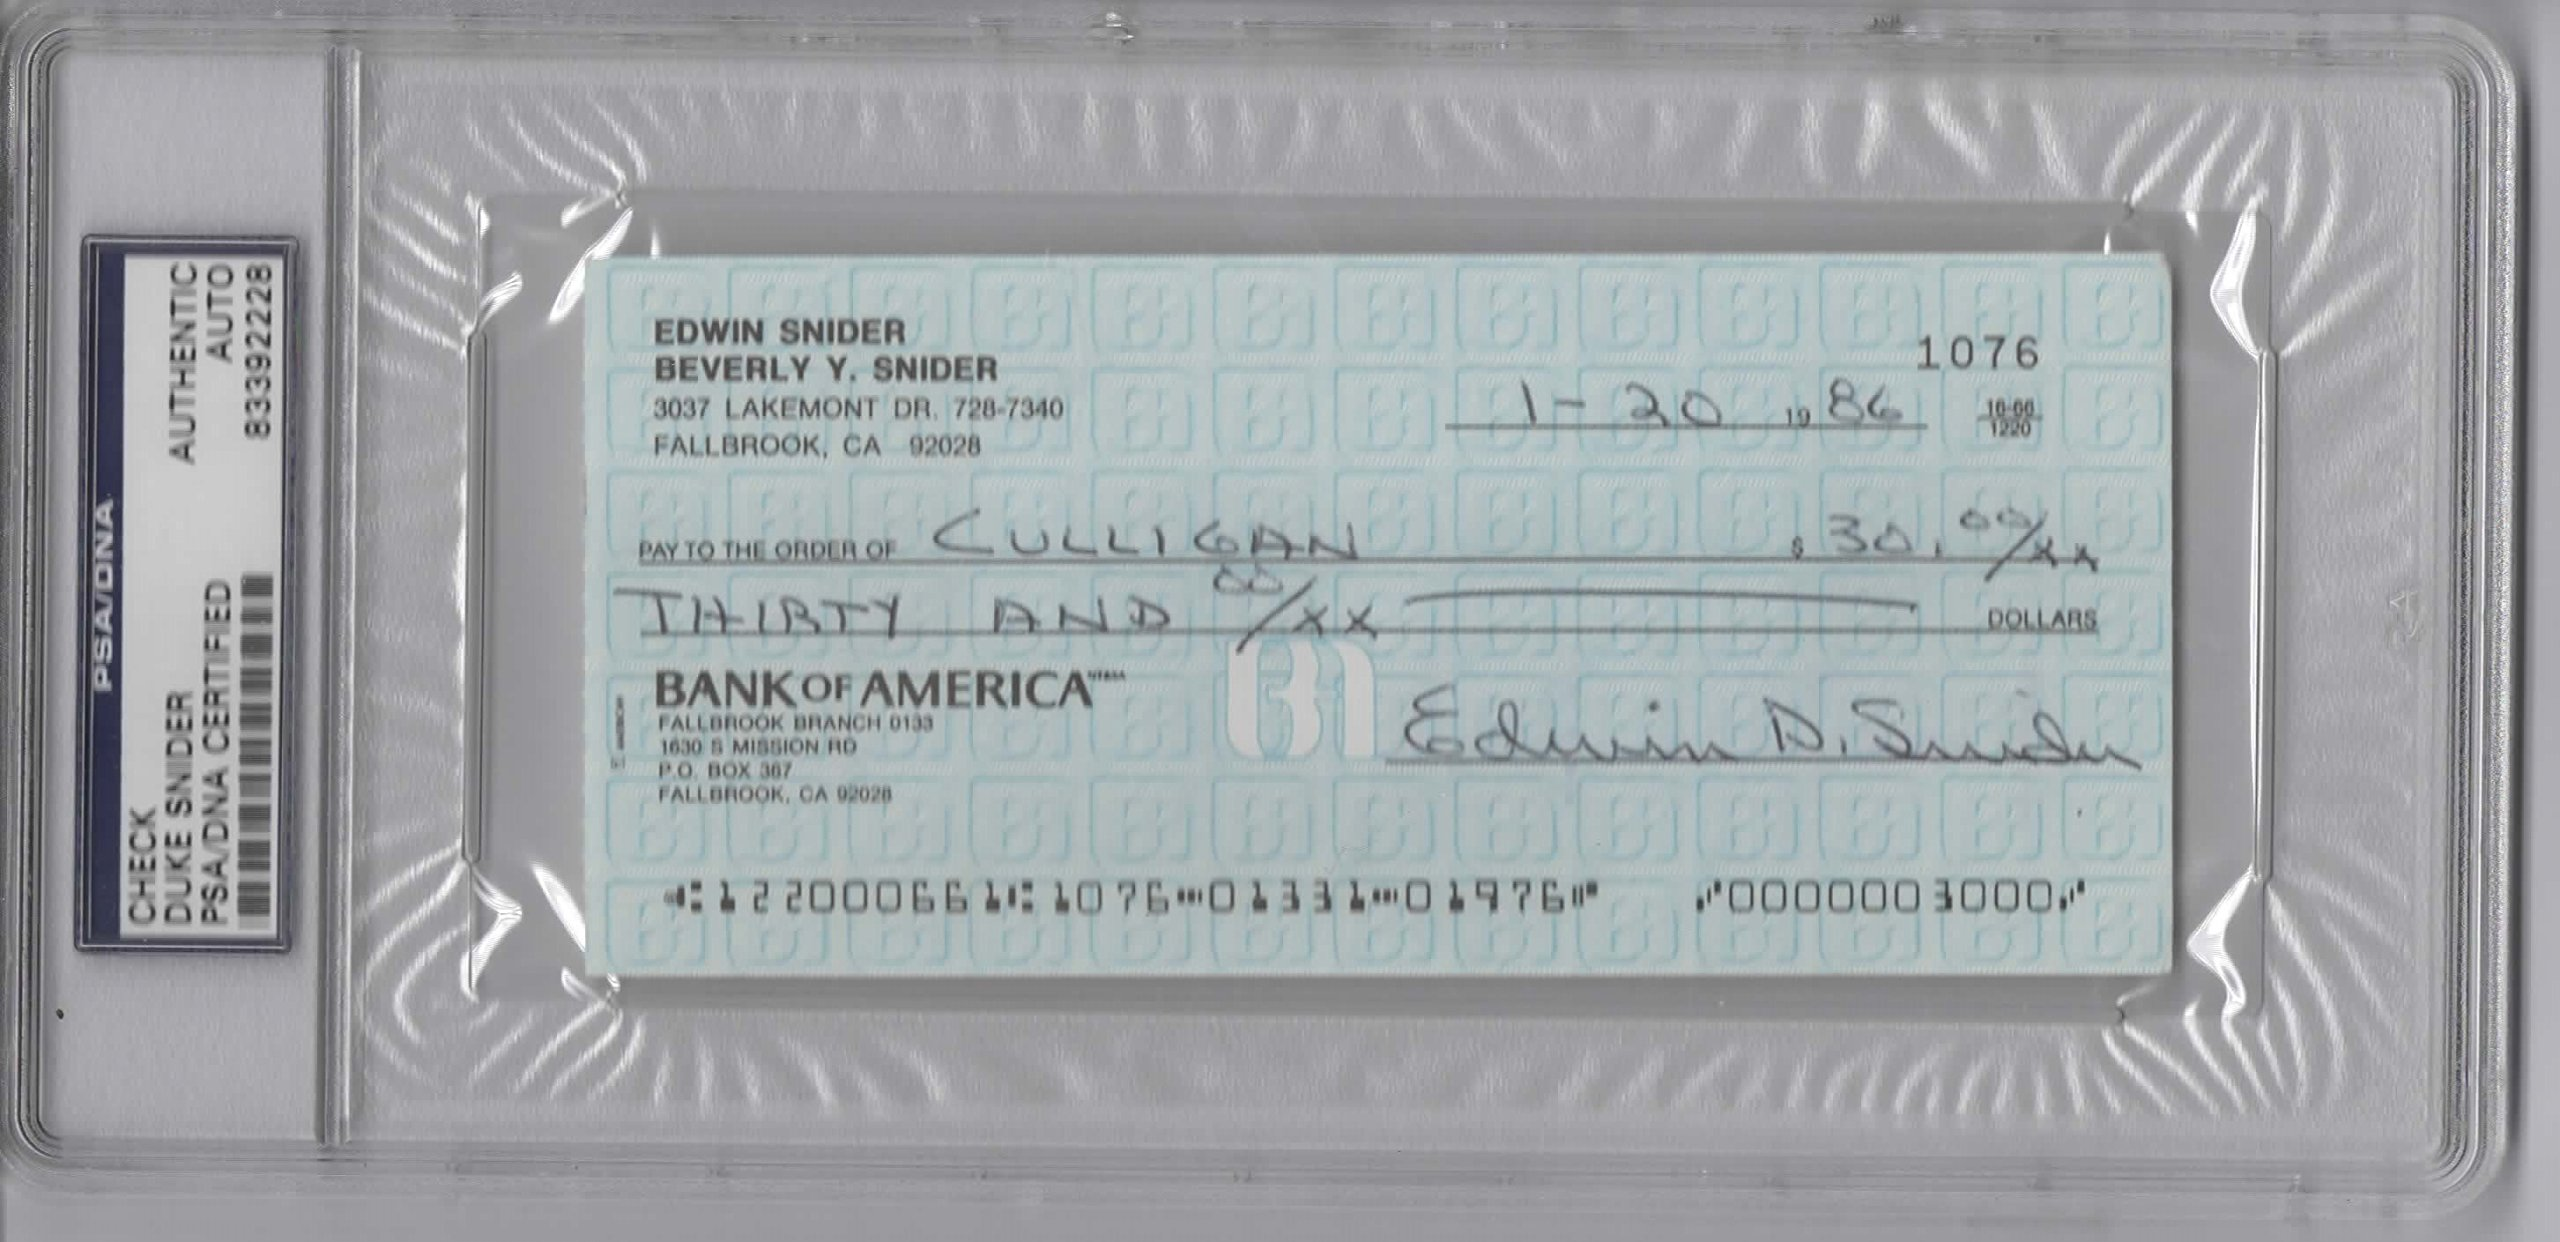 DUKE SNIDER SIGNED PERSONAL CHECK #1076 SLABBED PSA/DNA